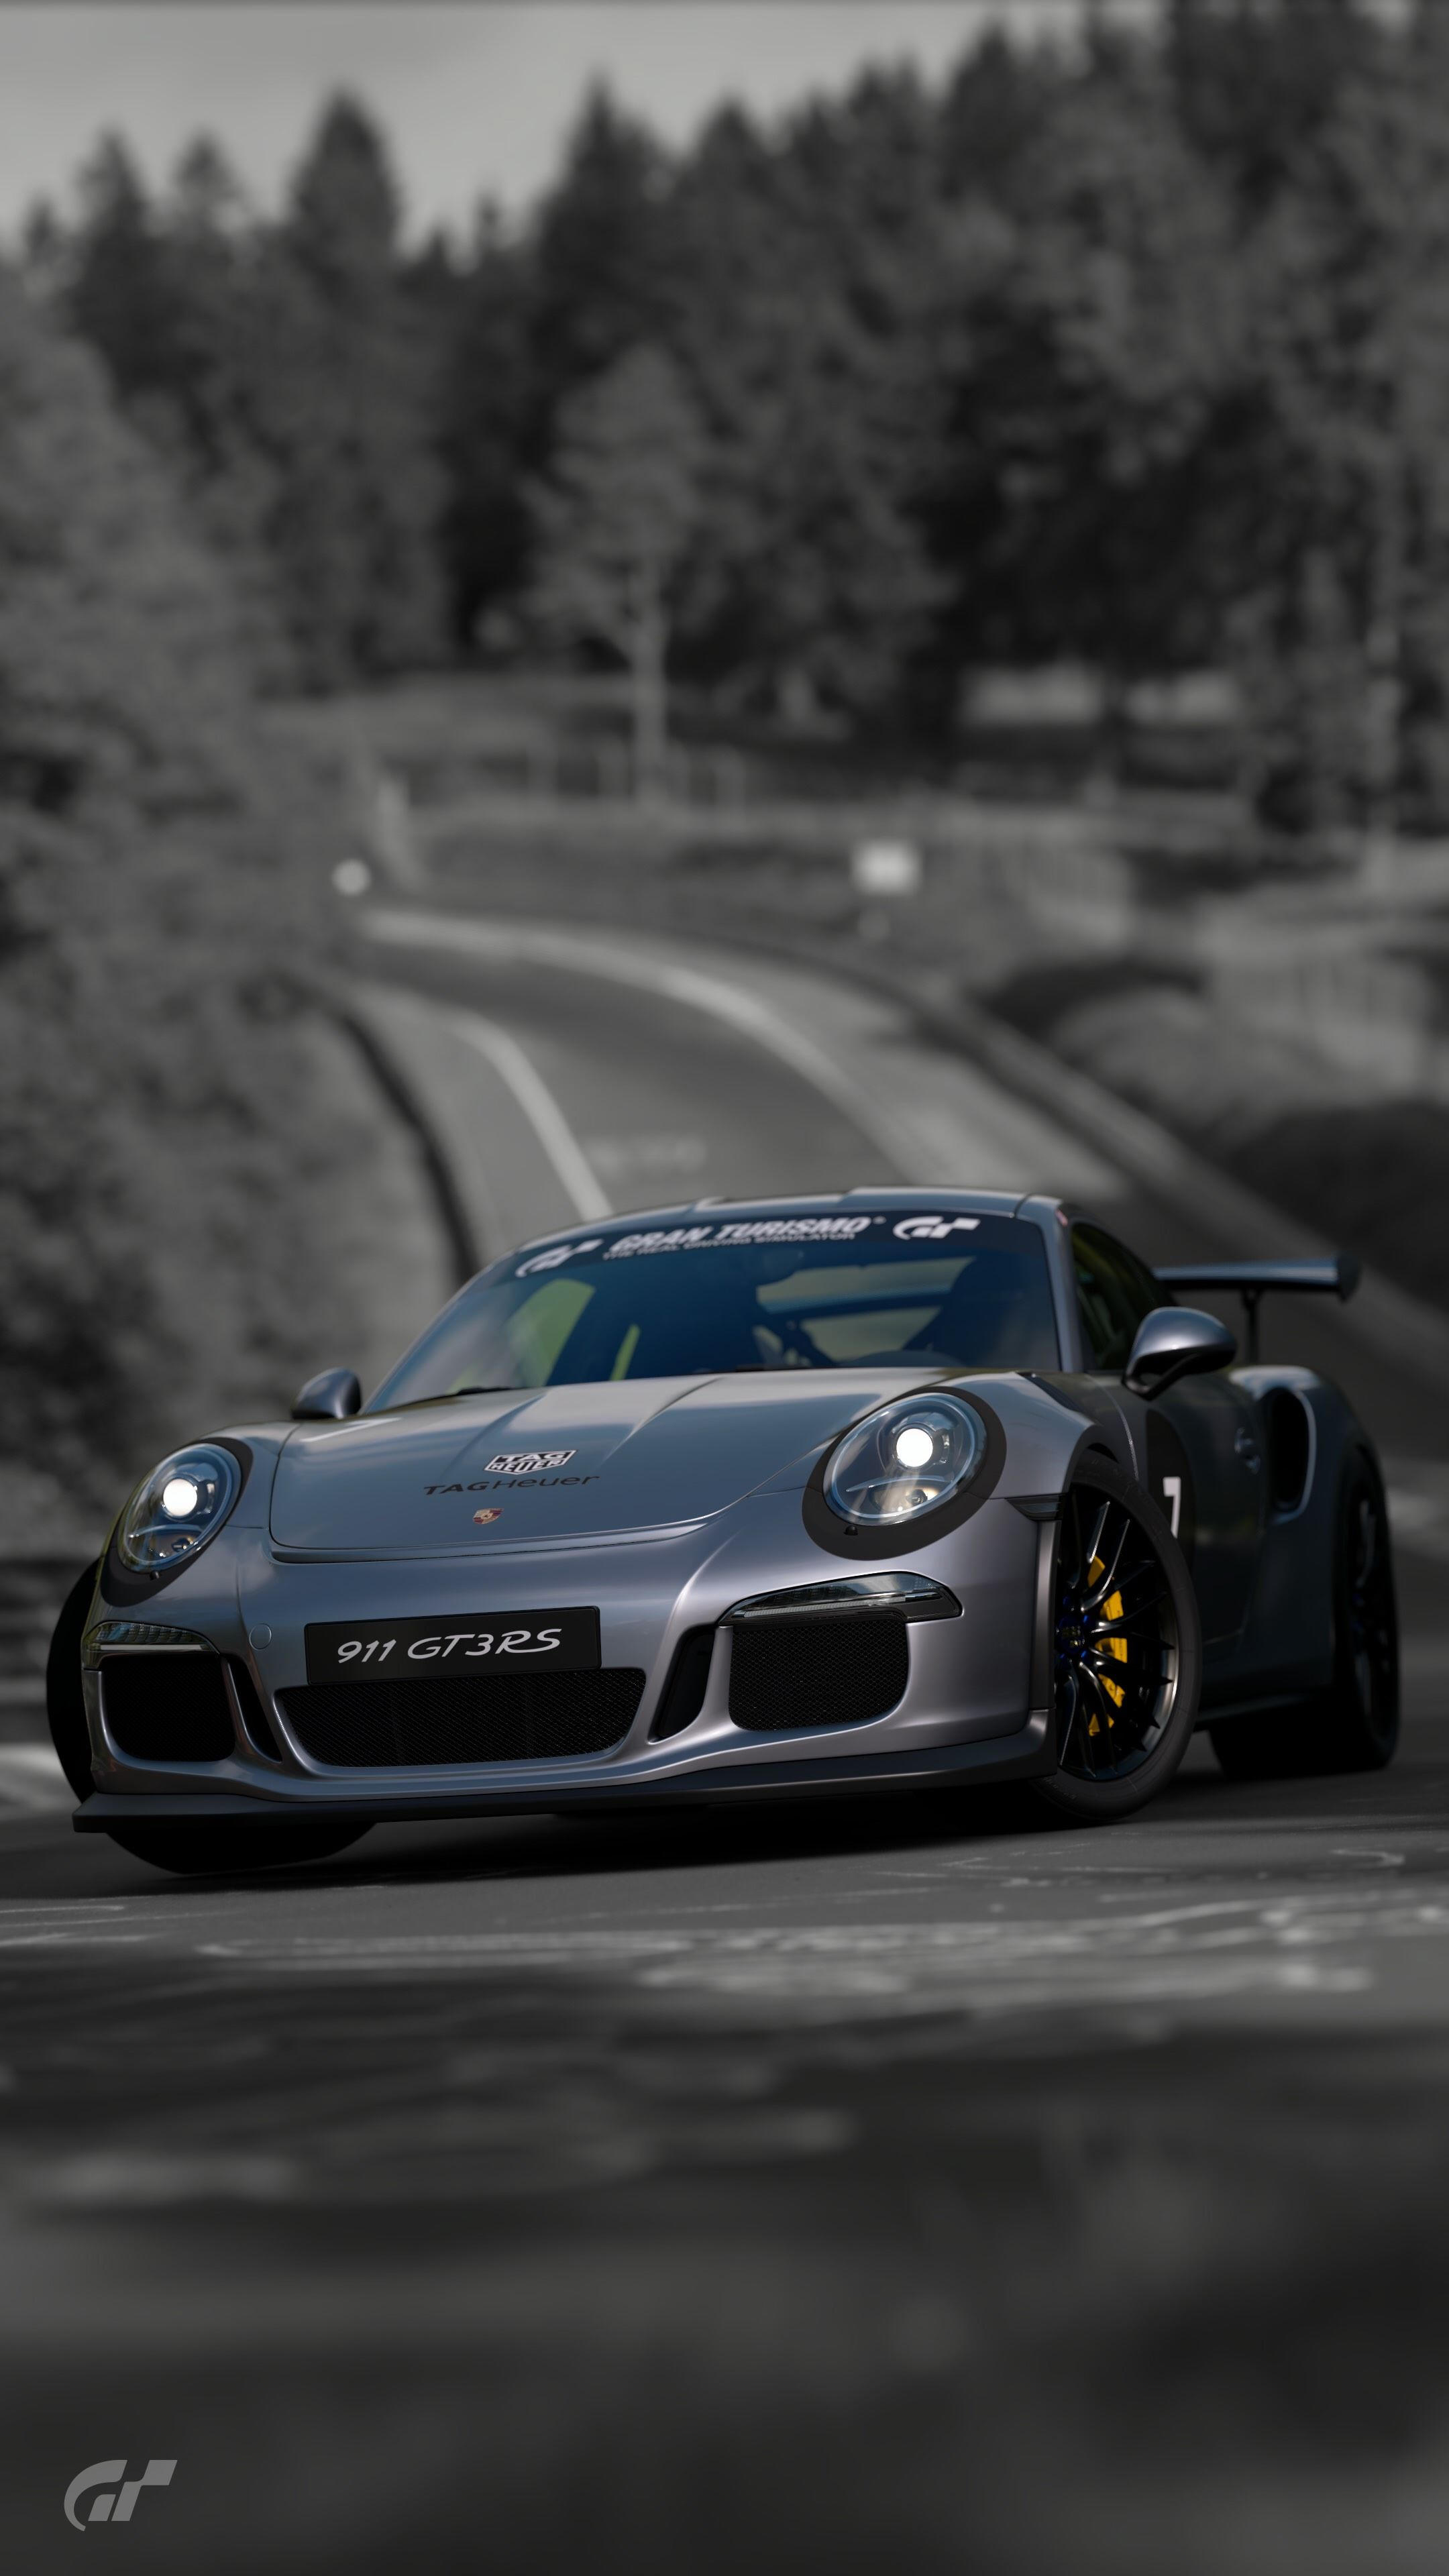 Porsche Gt3 Rs Wallpapers Top Free Porsche Gt3 Rs Backgrounds Wallpaperaccess